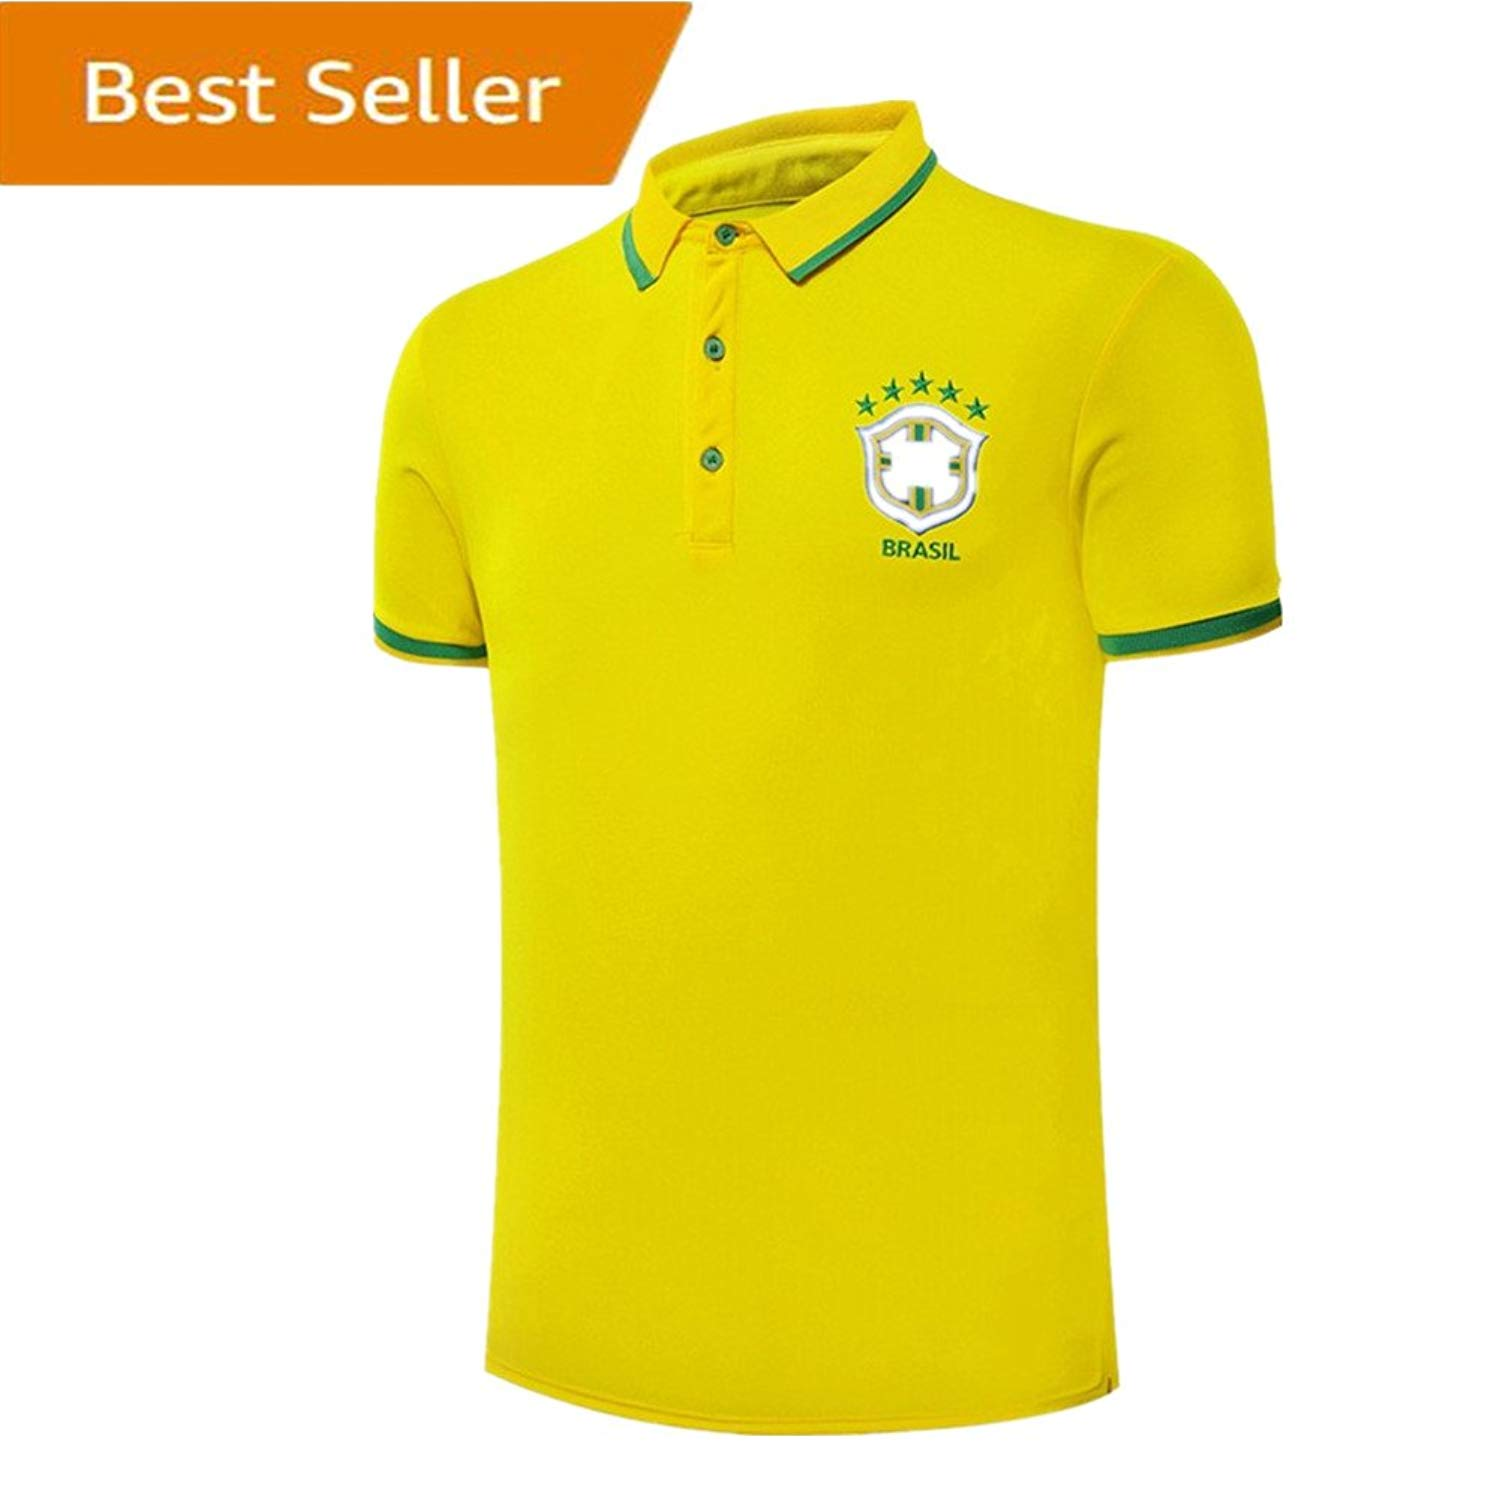 5818bad5aa8 Get Quotations · Brazil Neymar JR National Team Soccer Polo Tshirt Mens  Organic Cotton Polo Shirts Yellow Size M